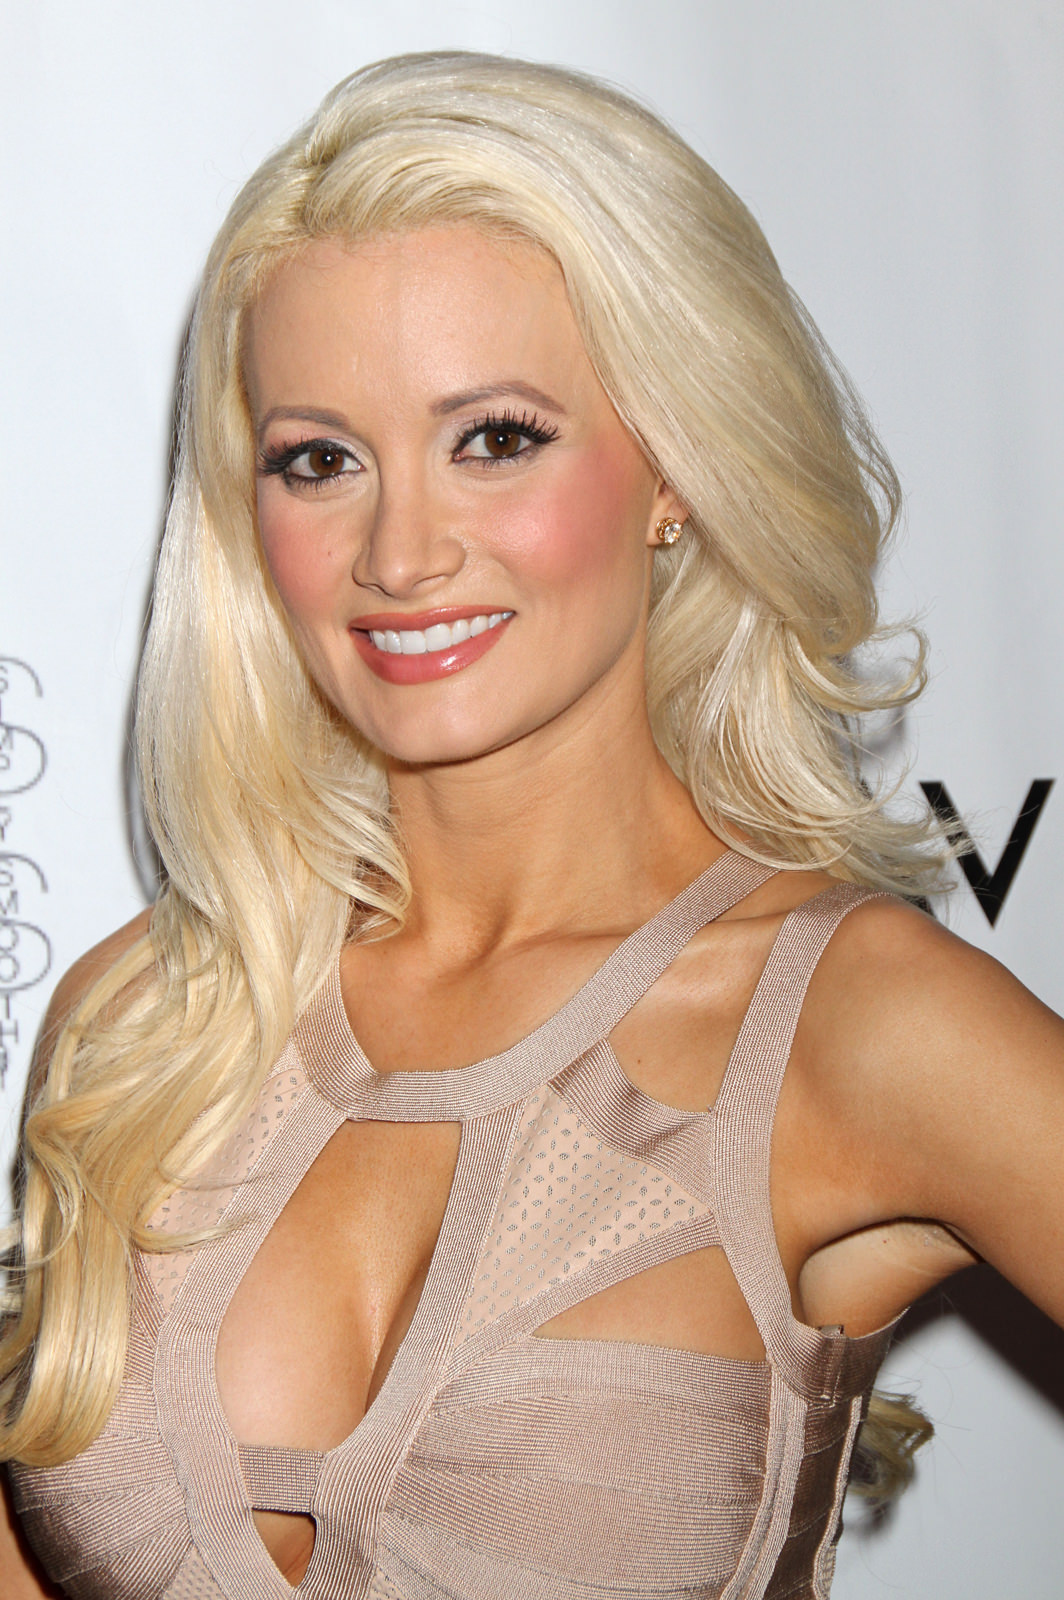 Holly Madison Photo Gallery